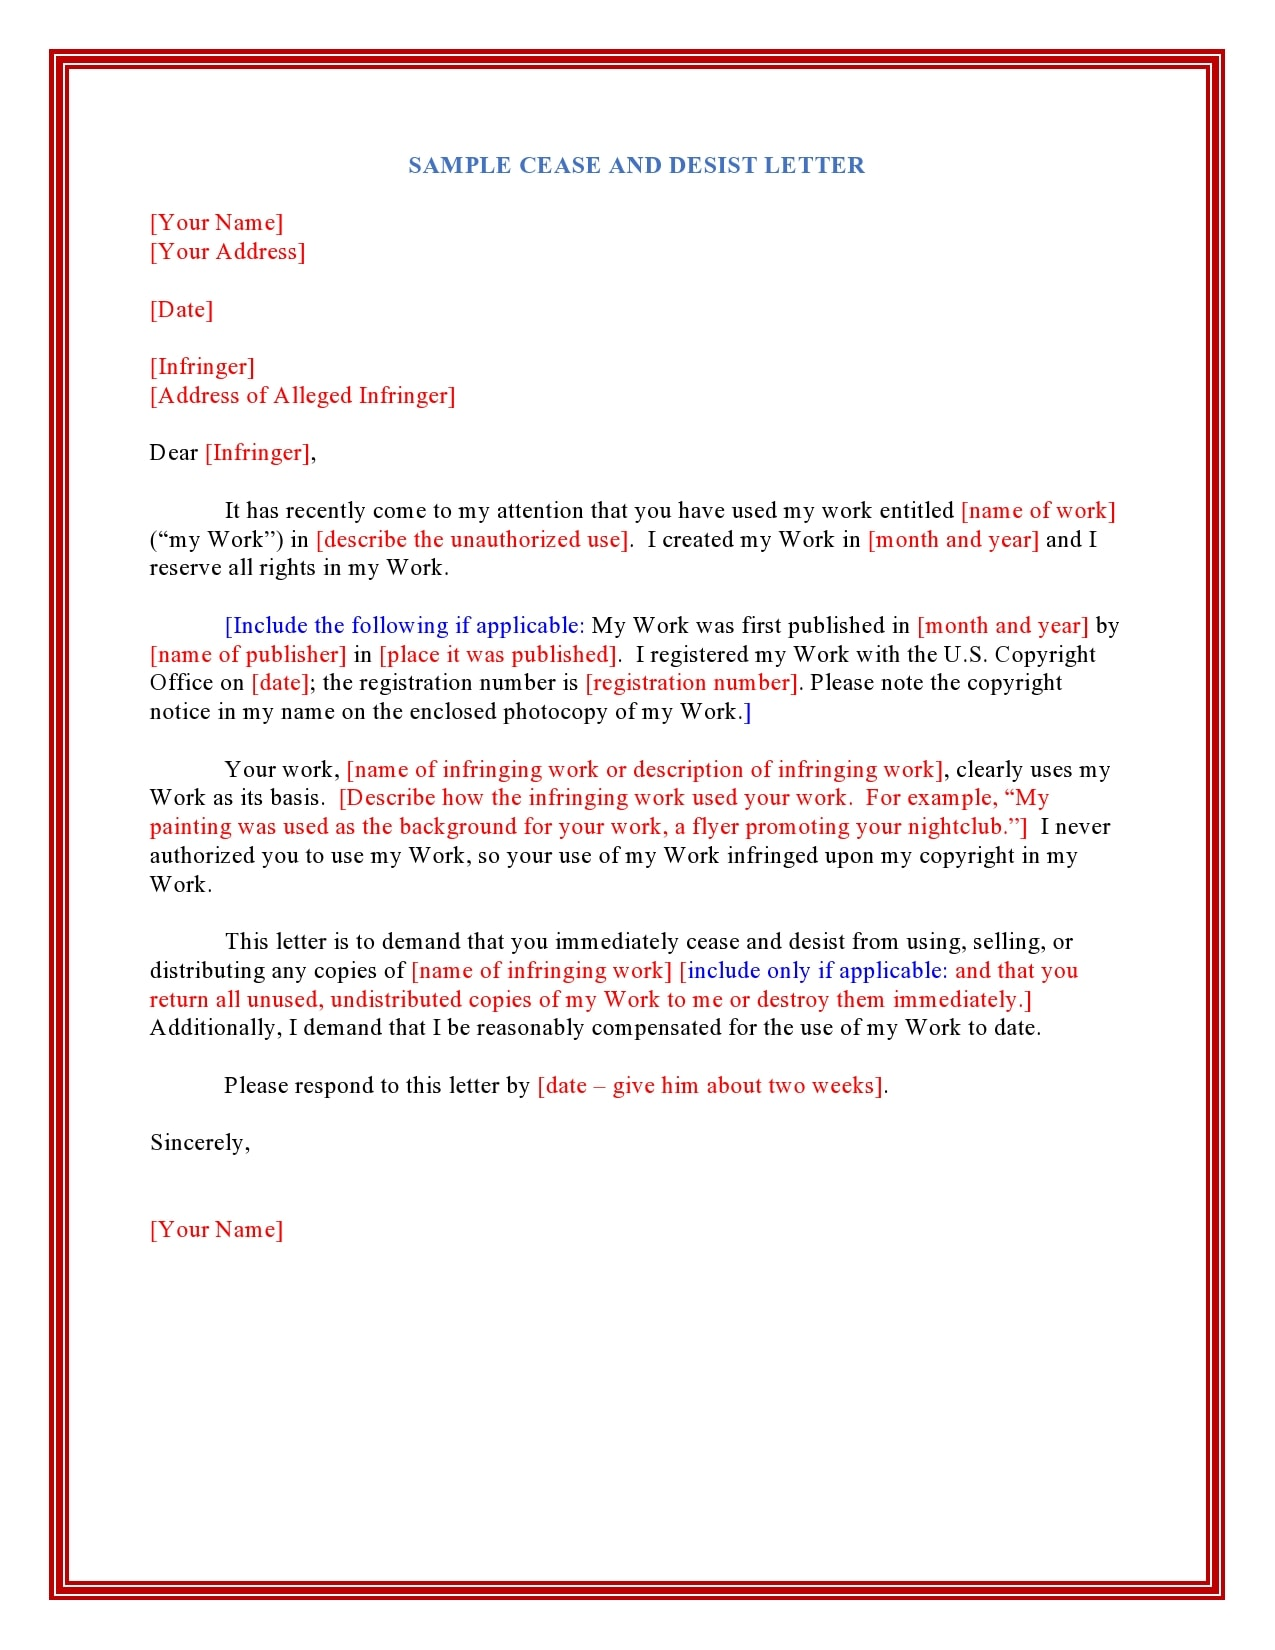 Sample Cease And Desist Letter Trademark Infringement from templatearchive.com